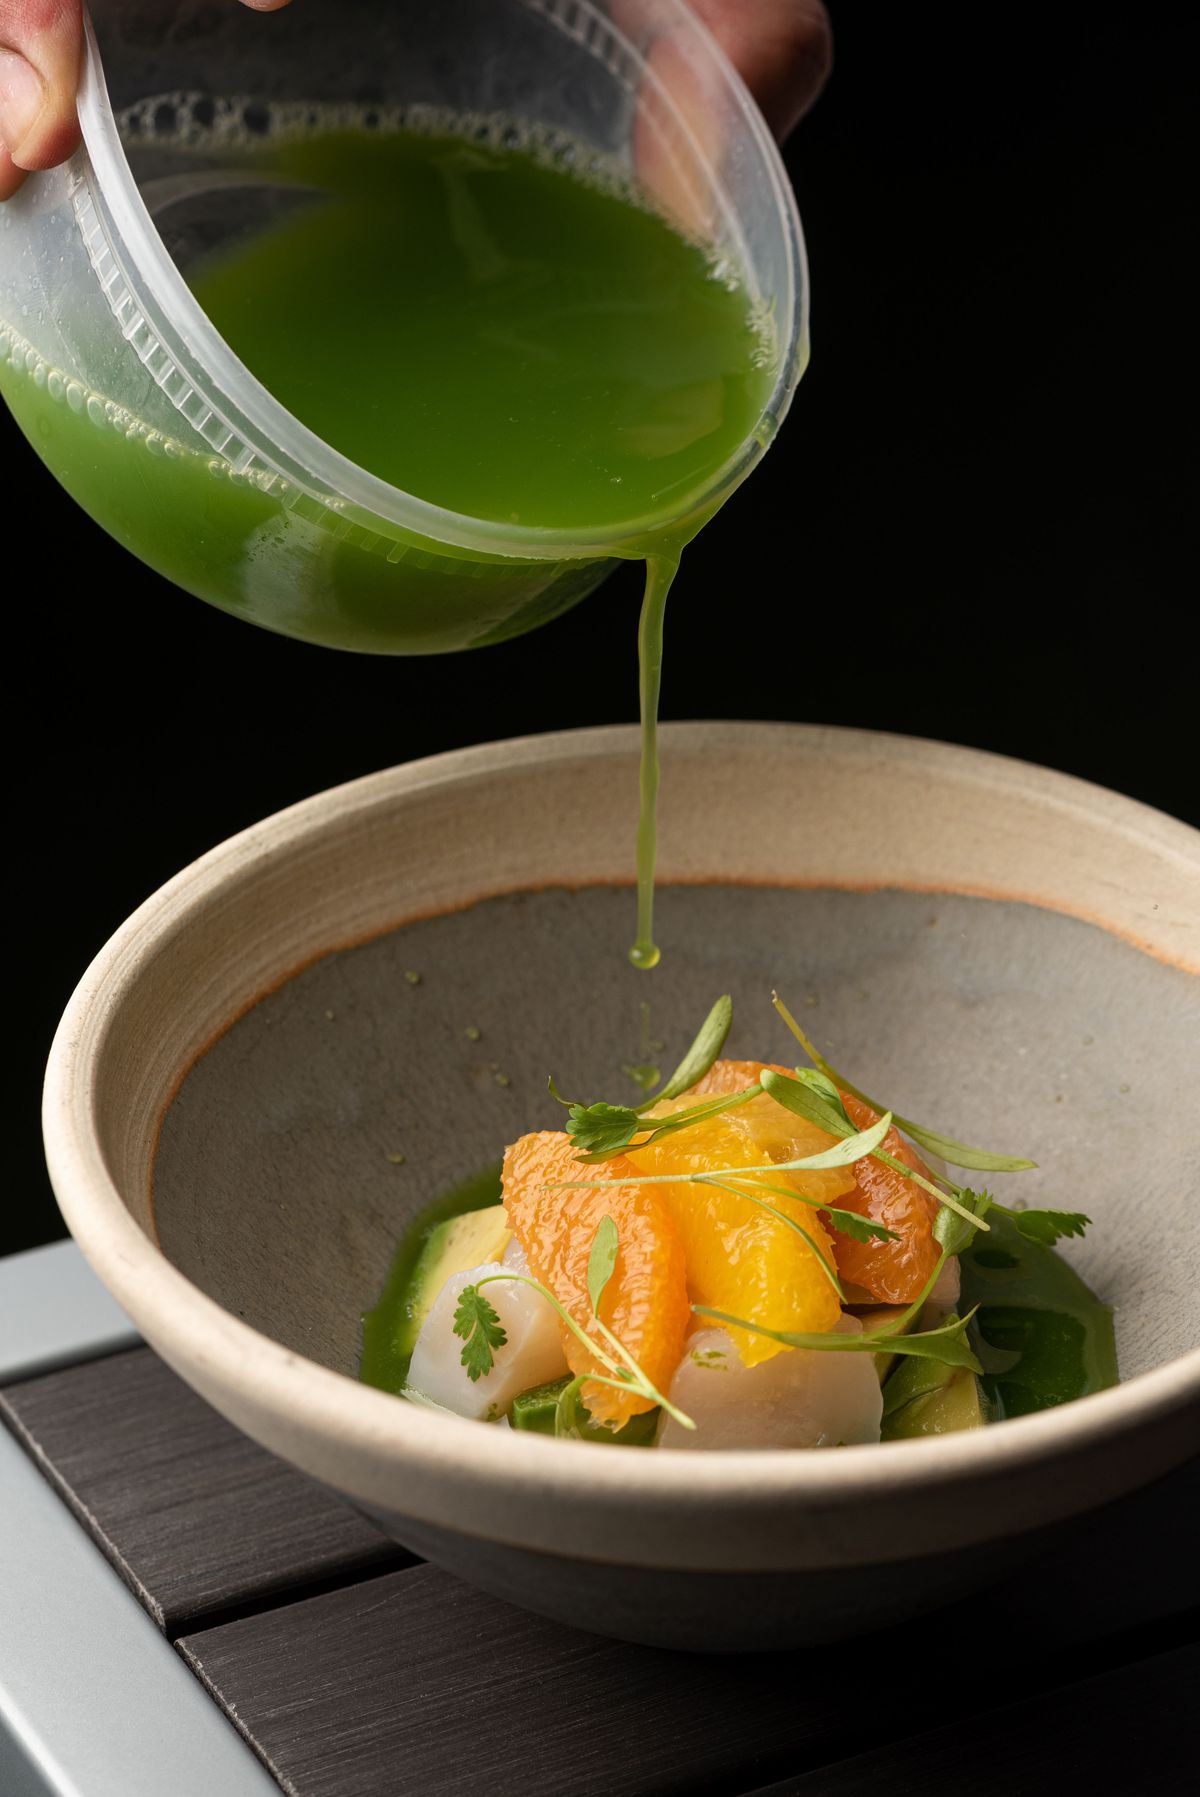 A crudo with citrus on top and a splash of green liquid poured in.